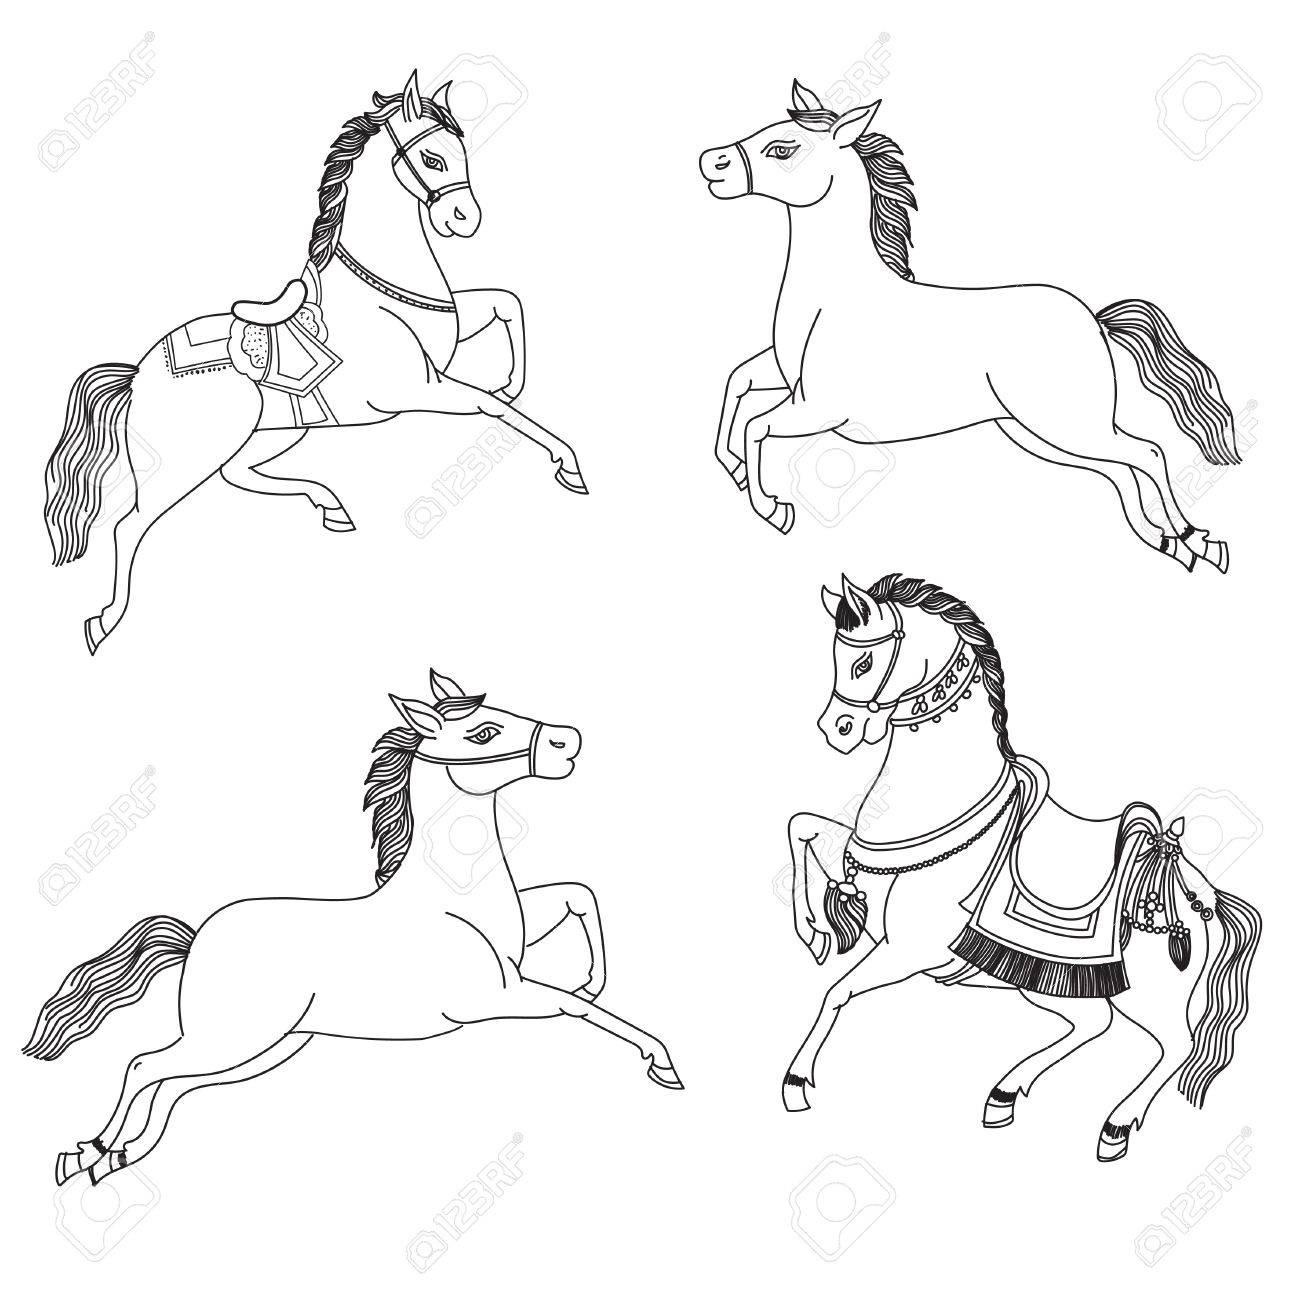 Running Horse Vector On A White Background Outline Drawing Horses Royalty Free Cliparts Vectors And Stock Illustration Image 61630850